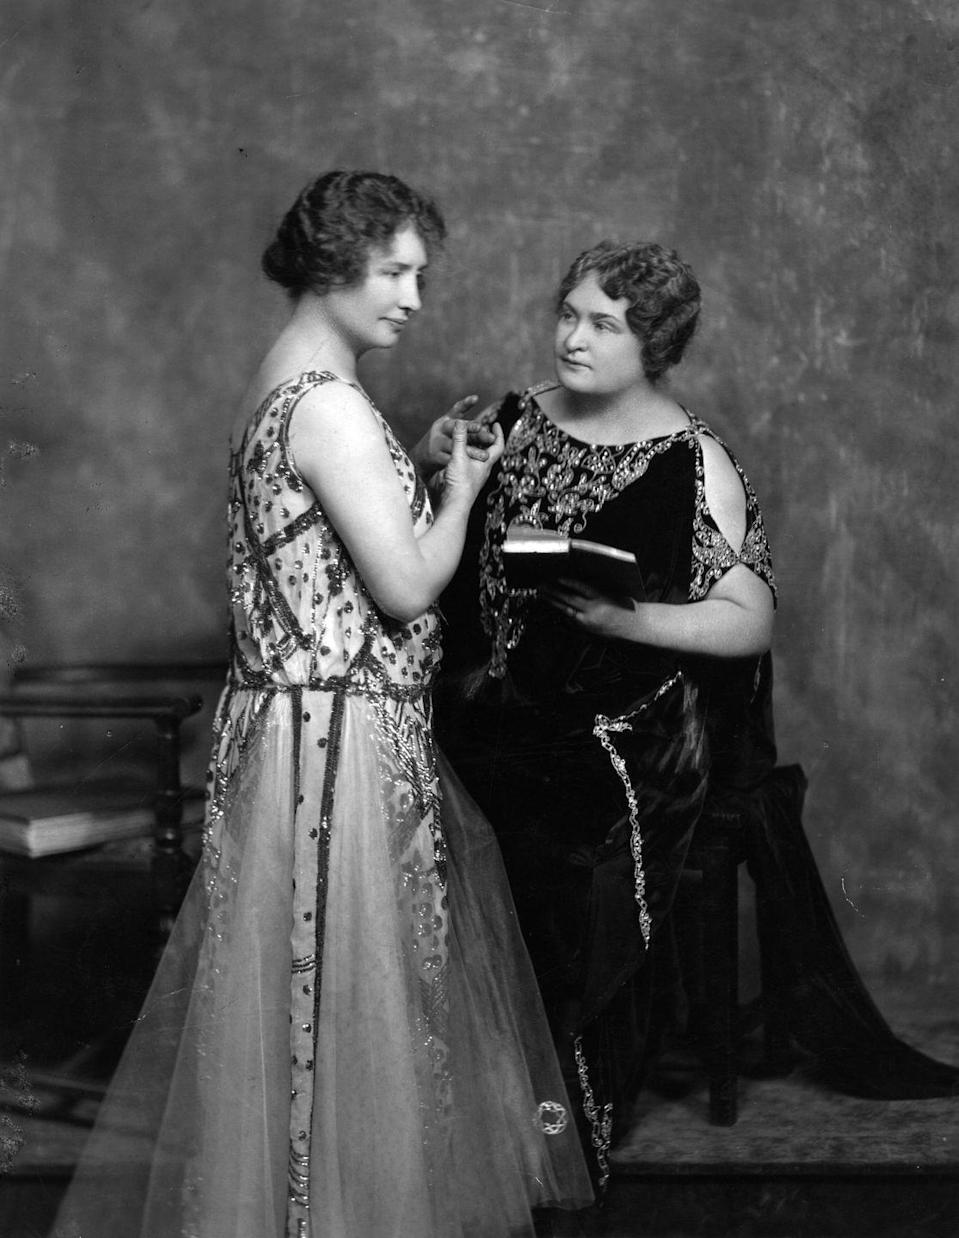 <p>Teacher Anne Sullivan worked with Helen Keller, a young woman who was blind and deaf since she was an infant, teaching her how to communicate with the world around her.</p>